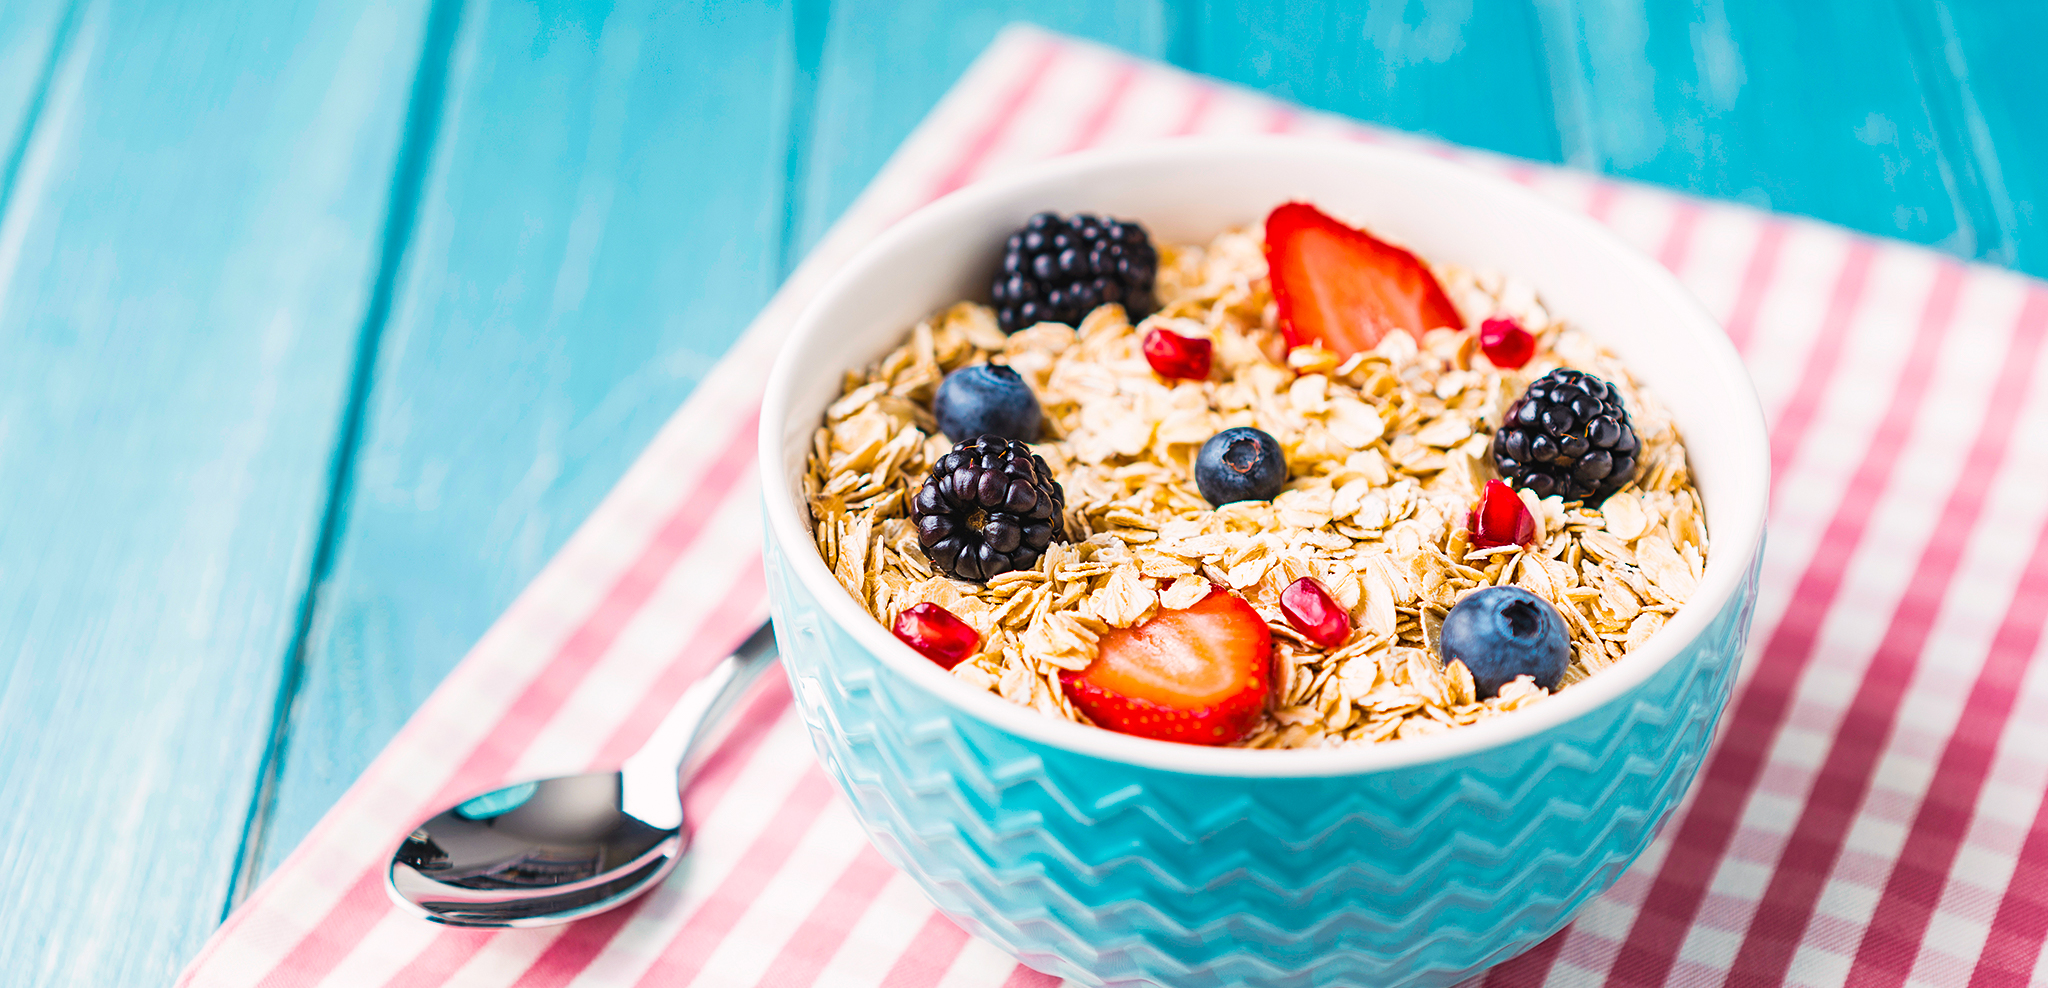 7 Nourishing Breakfast Options To Fight Inflammation